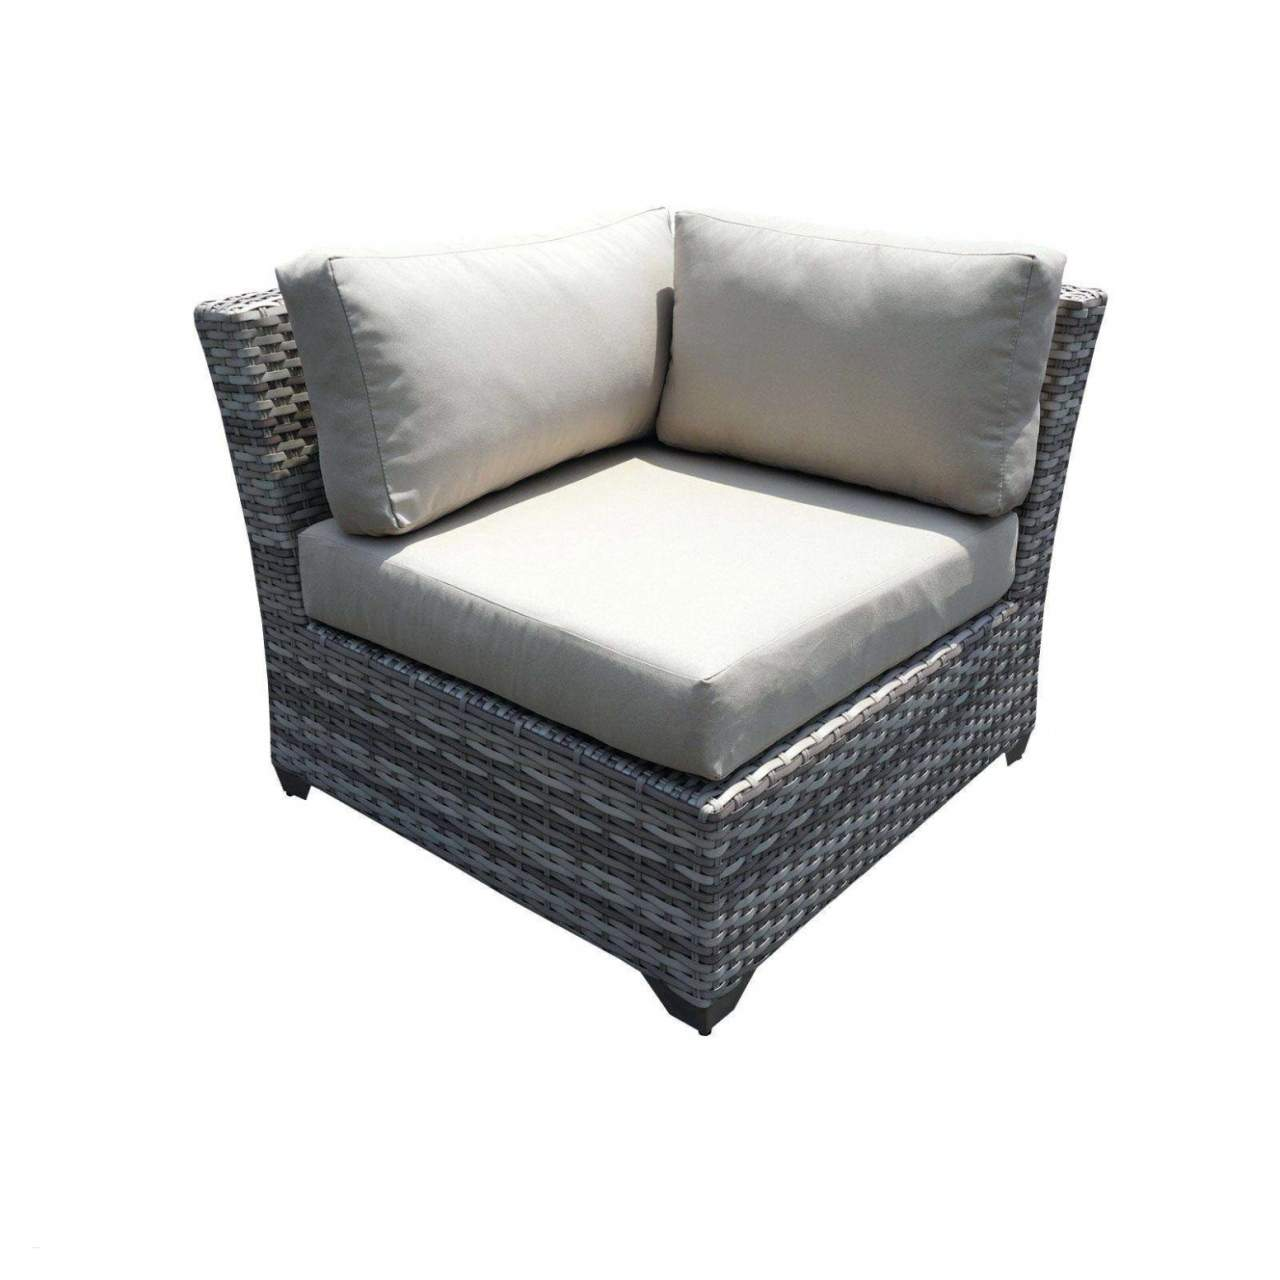 daybed couch couch discount luxus patio furniture daybed patio daybed 0d kimya durch daybed couch